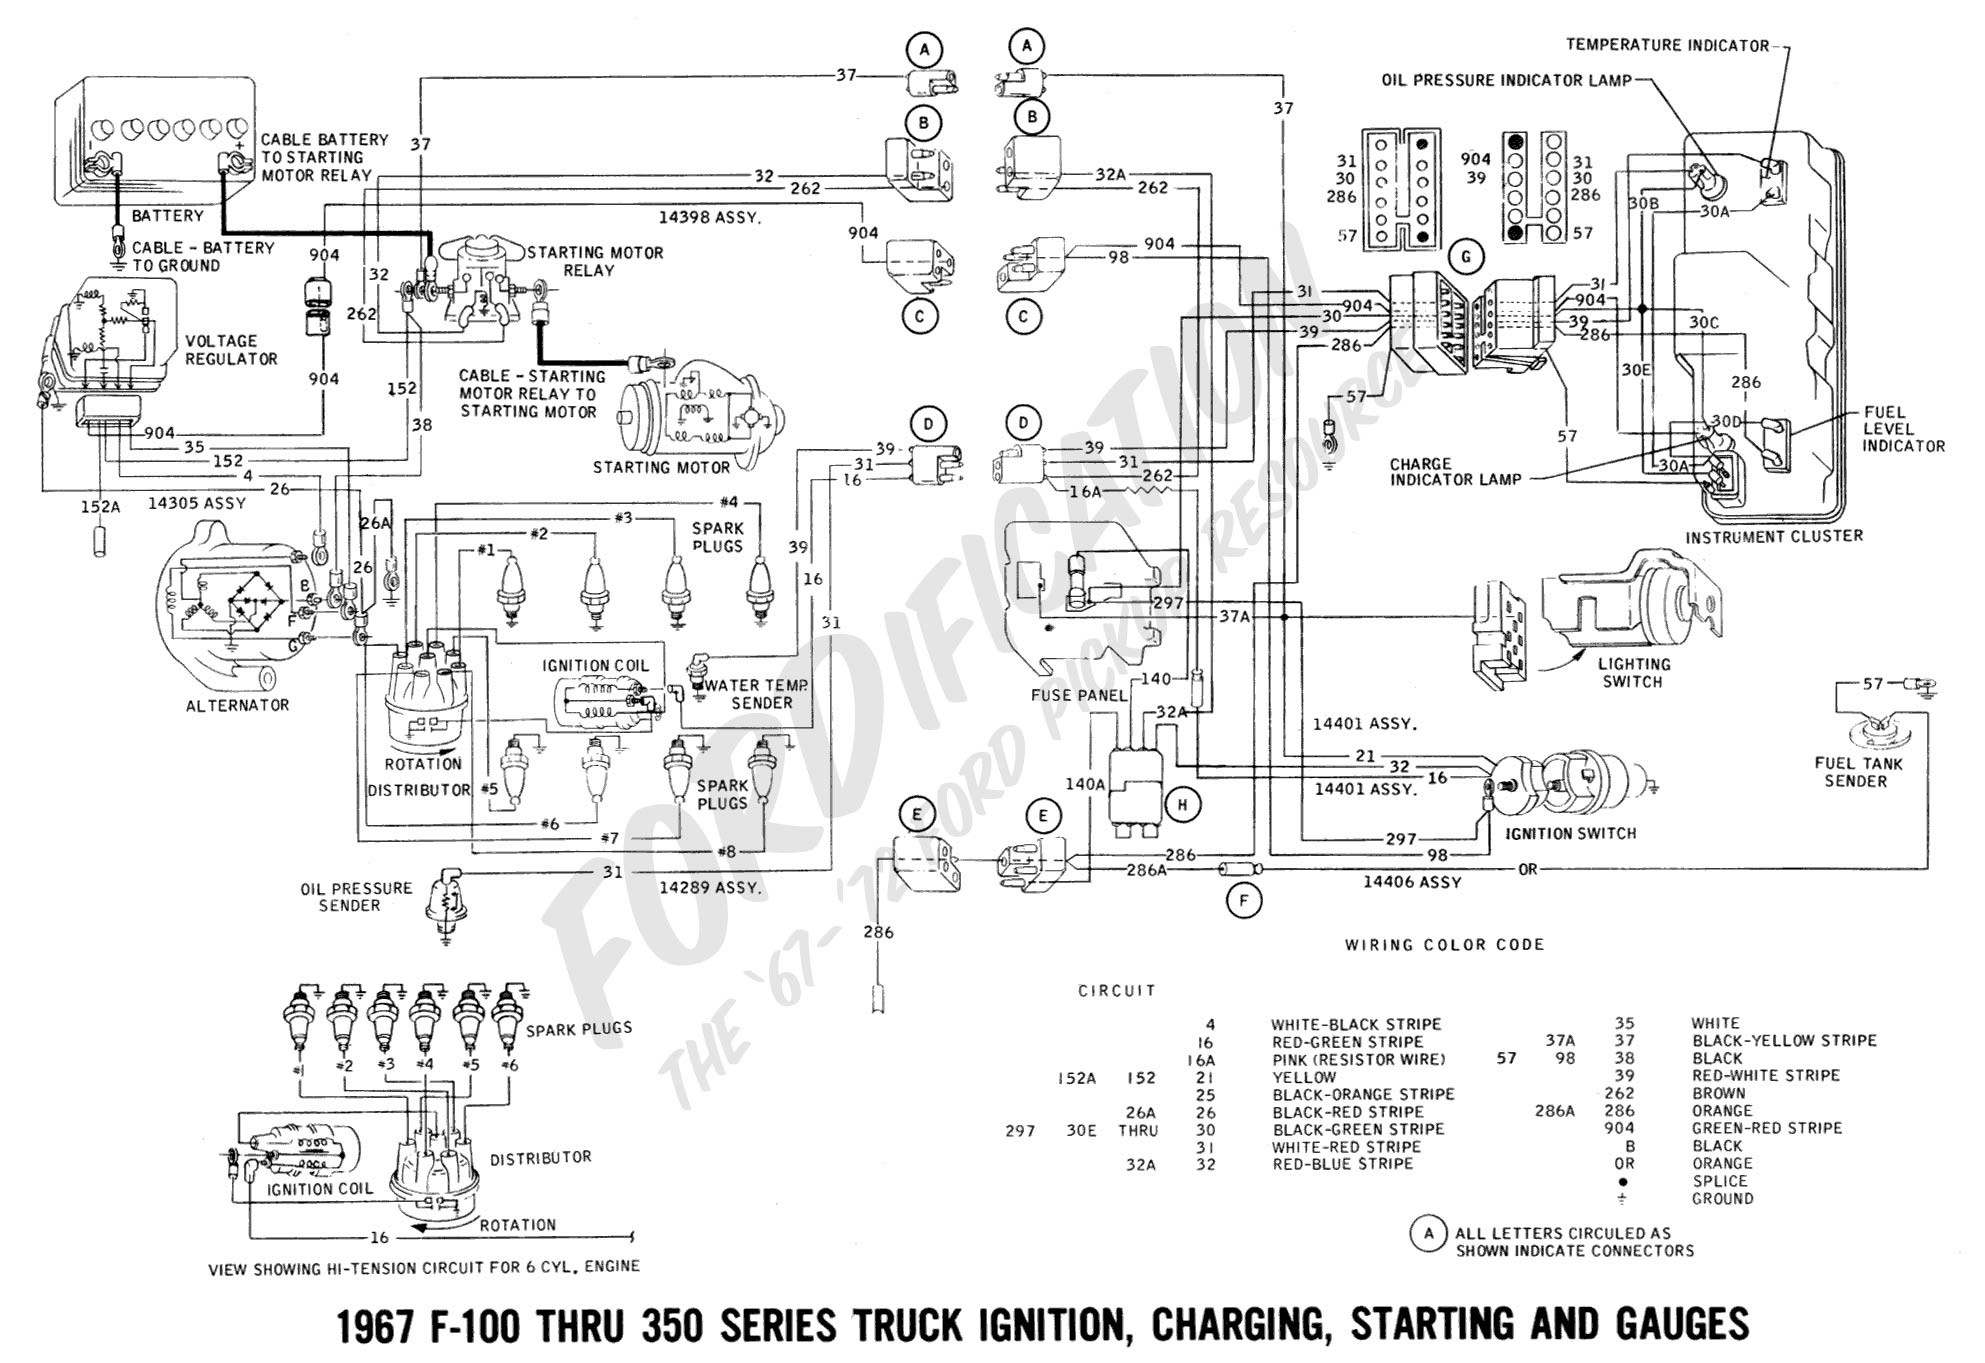 hight resolution of hight resolution of 2004 ford f150 engine diagram ford ignition switch wiring diagram f350 battery wiring